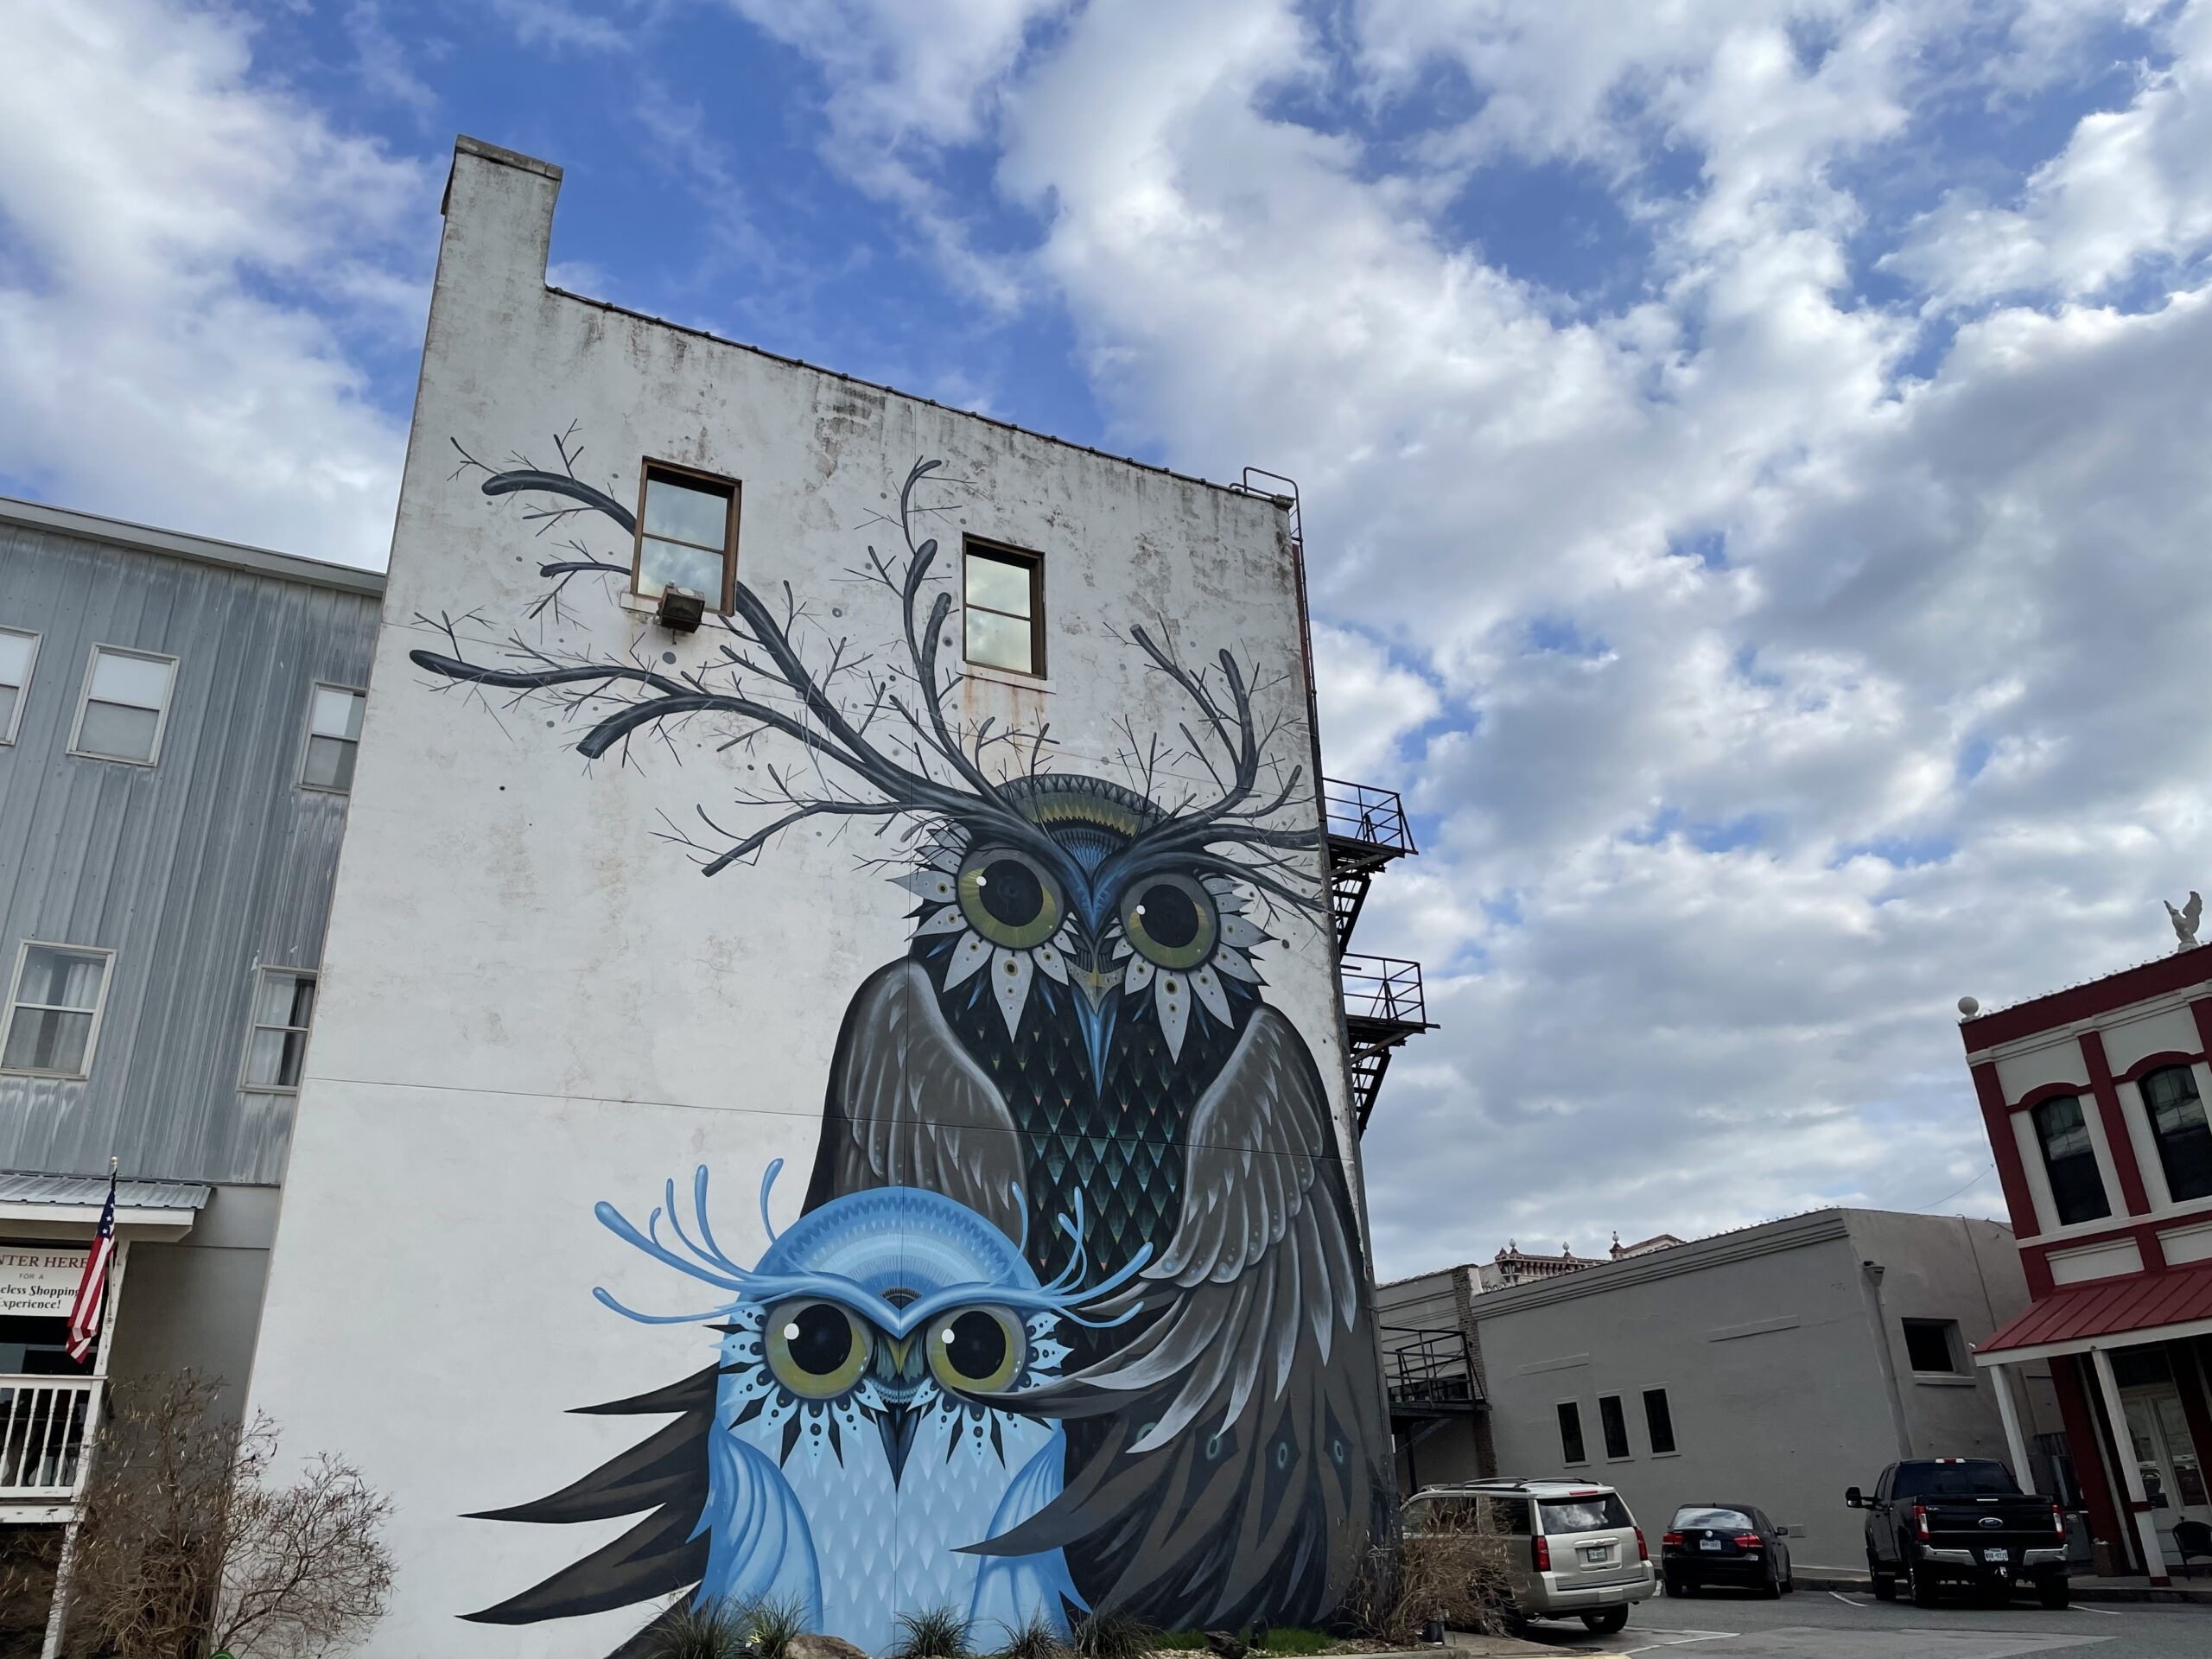 large mural on the side of a building against a blue sky with clouds. Mural is of two owls with antlers